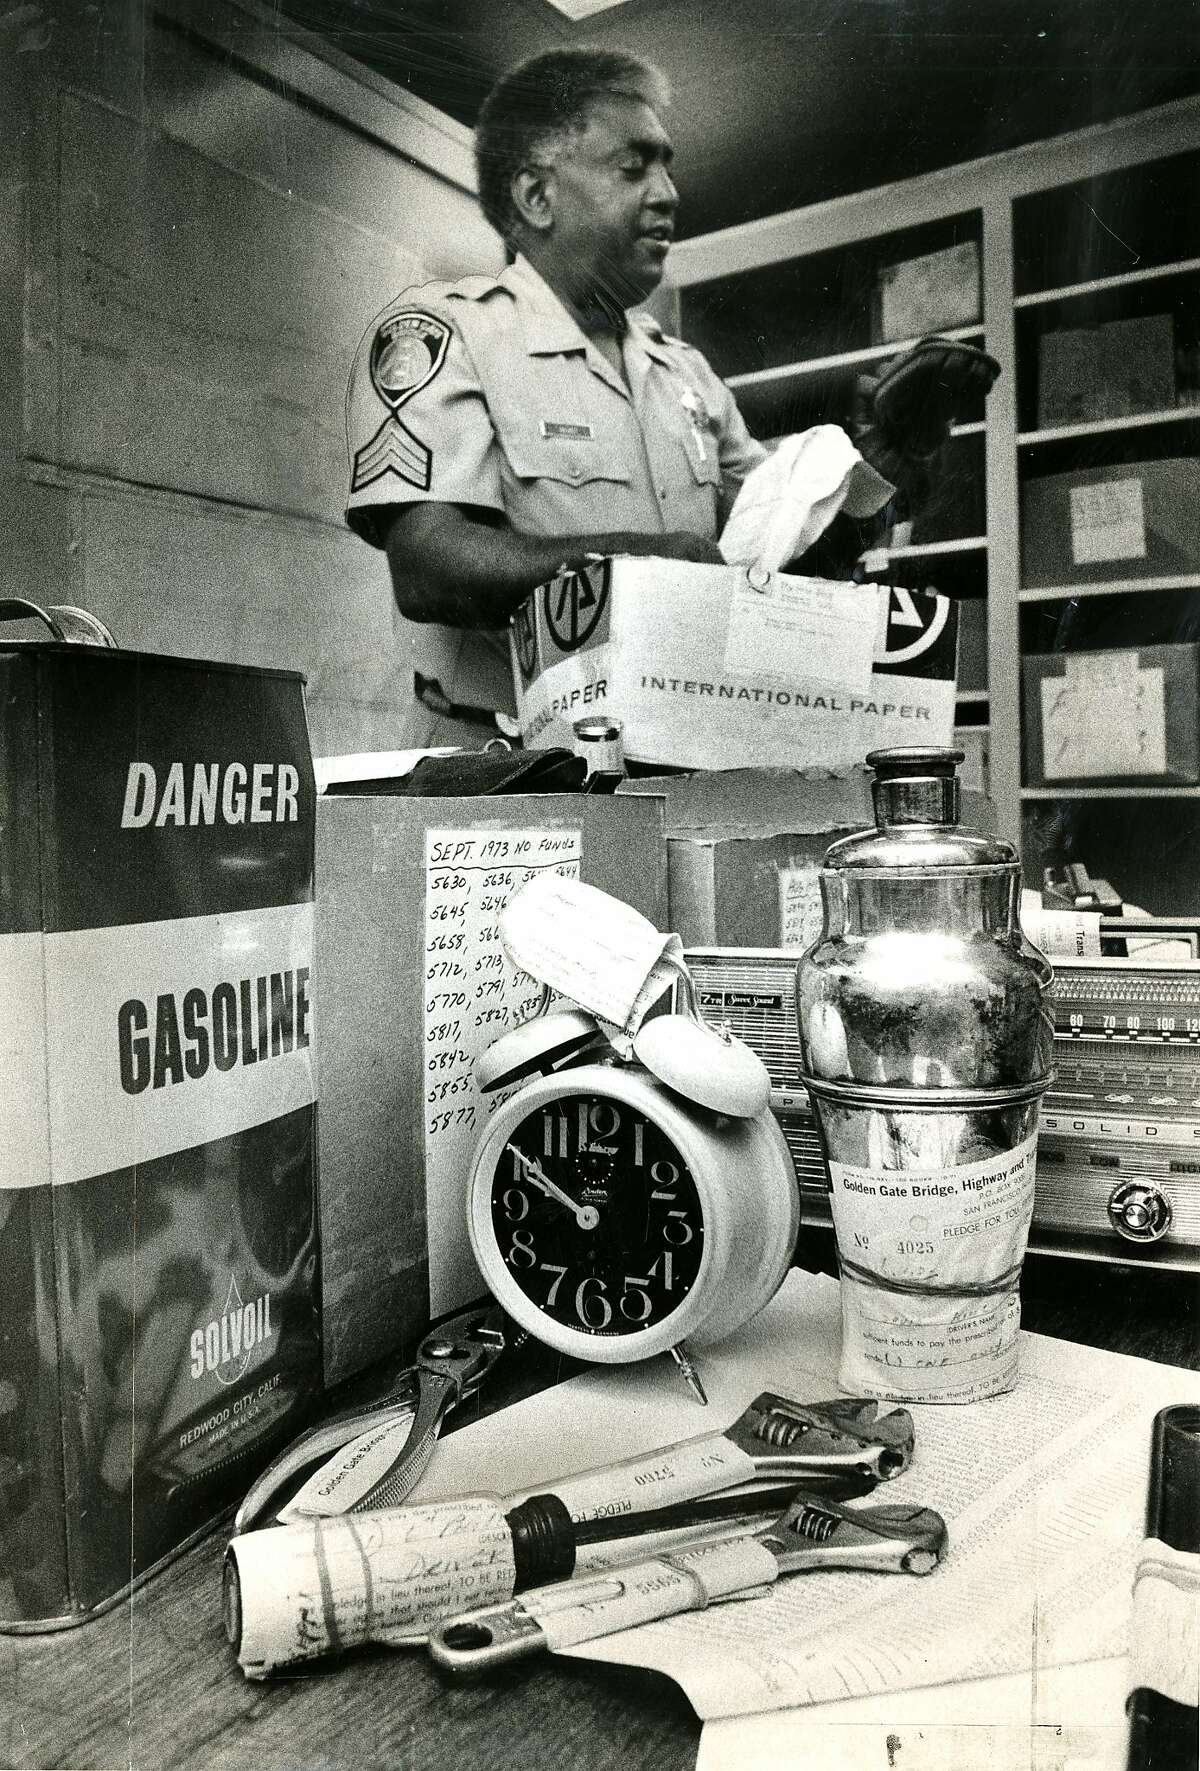 June 9, 1975: Charles Volivet examines items that were left, as security, by motorists who didn't have toll money. The items in the photo include a horse hair brush, alarm clock, transistor radios, and a pair of wrenches. The items were later auctioned off. Toll fees in the 1970's: December 1, 1969: 25-trip discount toll ticket book available for $10 (40 cents/trip) December 25, 1971 Replaced discount toll ticket books with 20-trip convenience ticket book for $10 (50 cents/trip) March 1, 1974 75 cents southbound toll, free northbound, and 20-trip convenience ticket book for $15 (75 cents/trip)